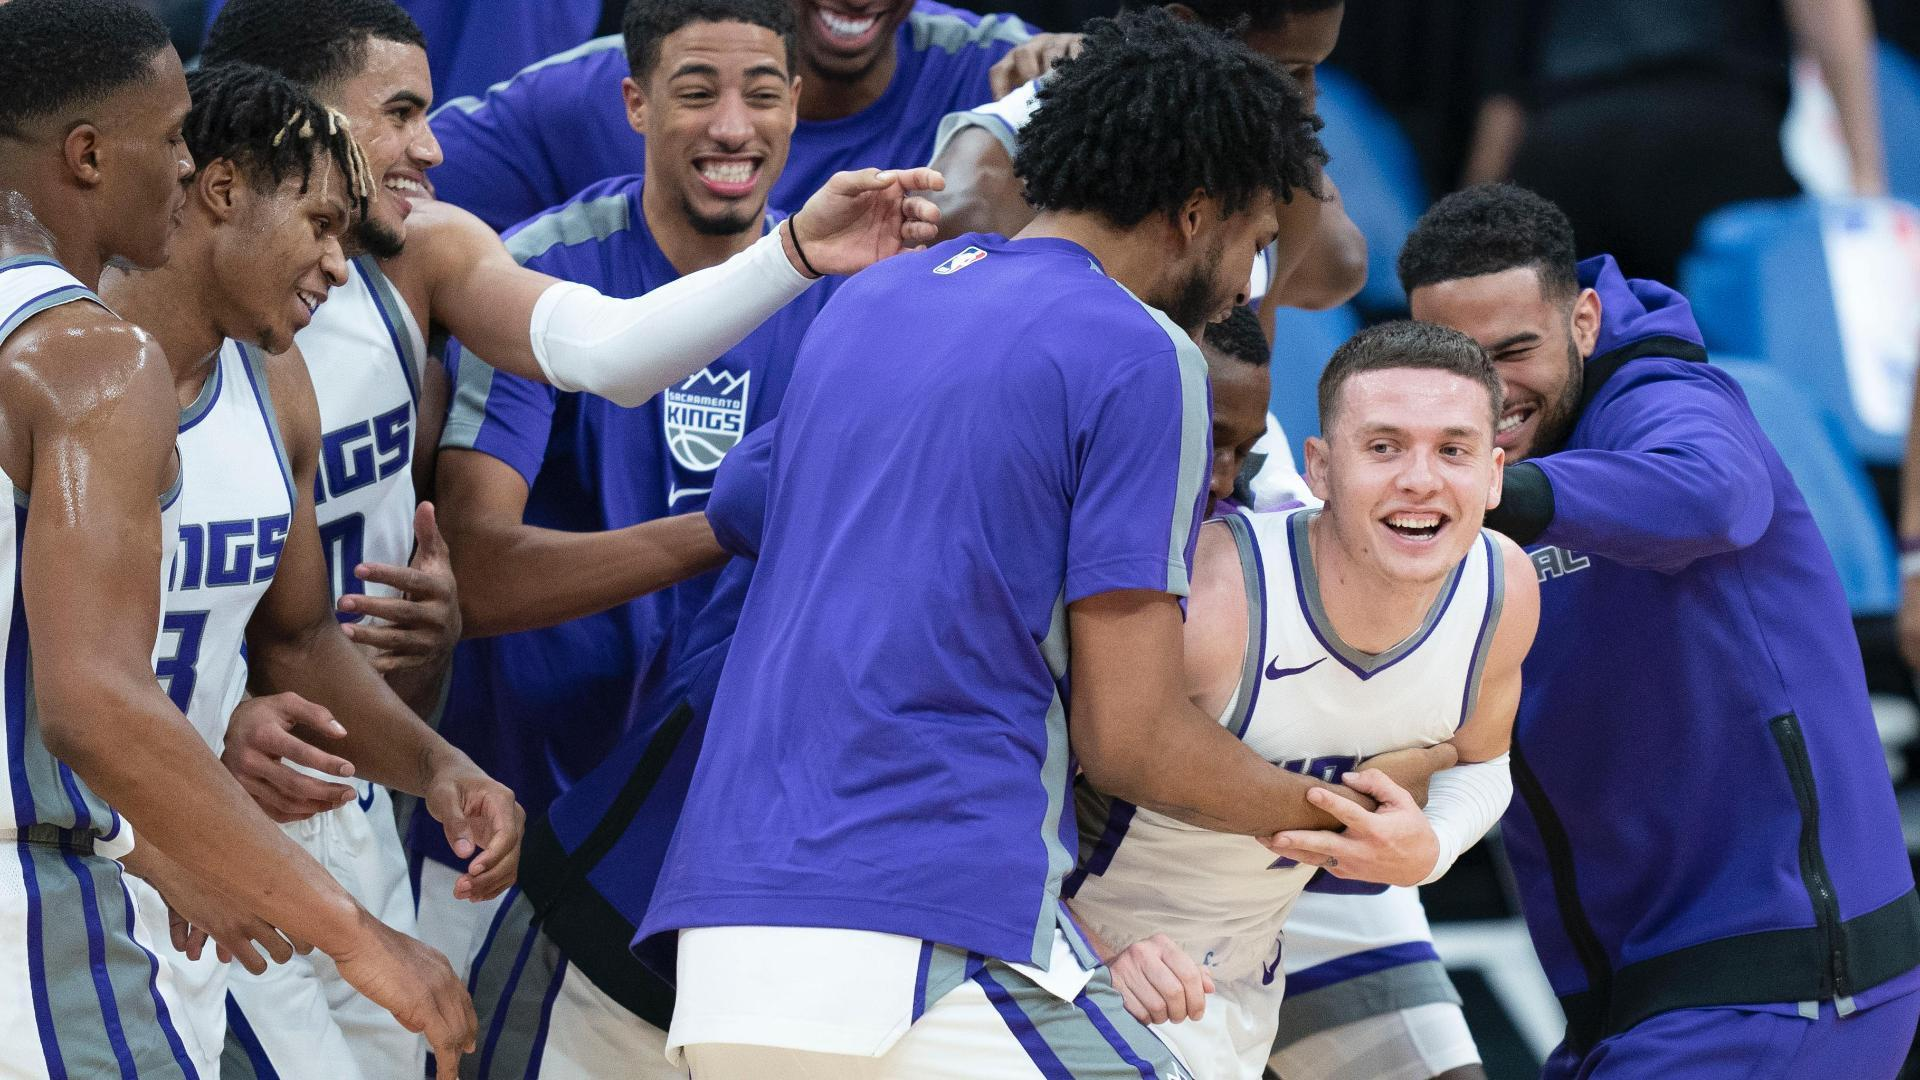 Kyle Guy nails game-winning 3 for Kings vs. Warriors